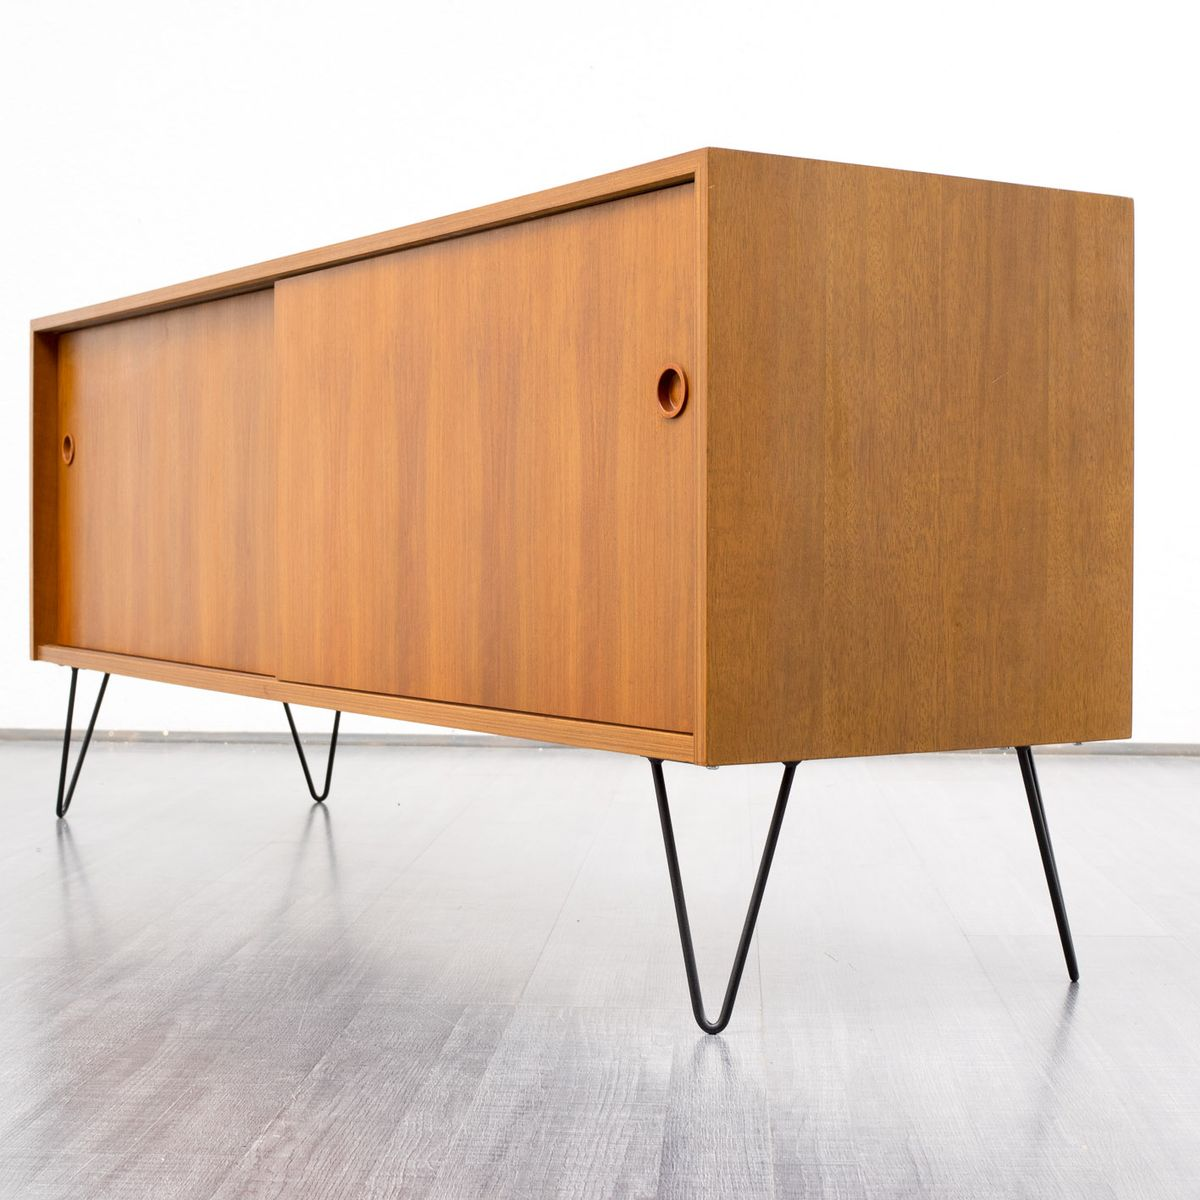 nussholz sideboard mit schiebet ren 1960er bei pamono kaufen. Black Bedroom Furniture Sets. Home Design Ideas